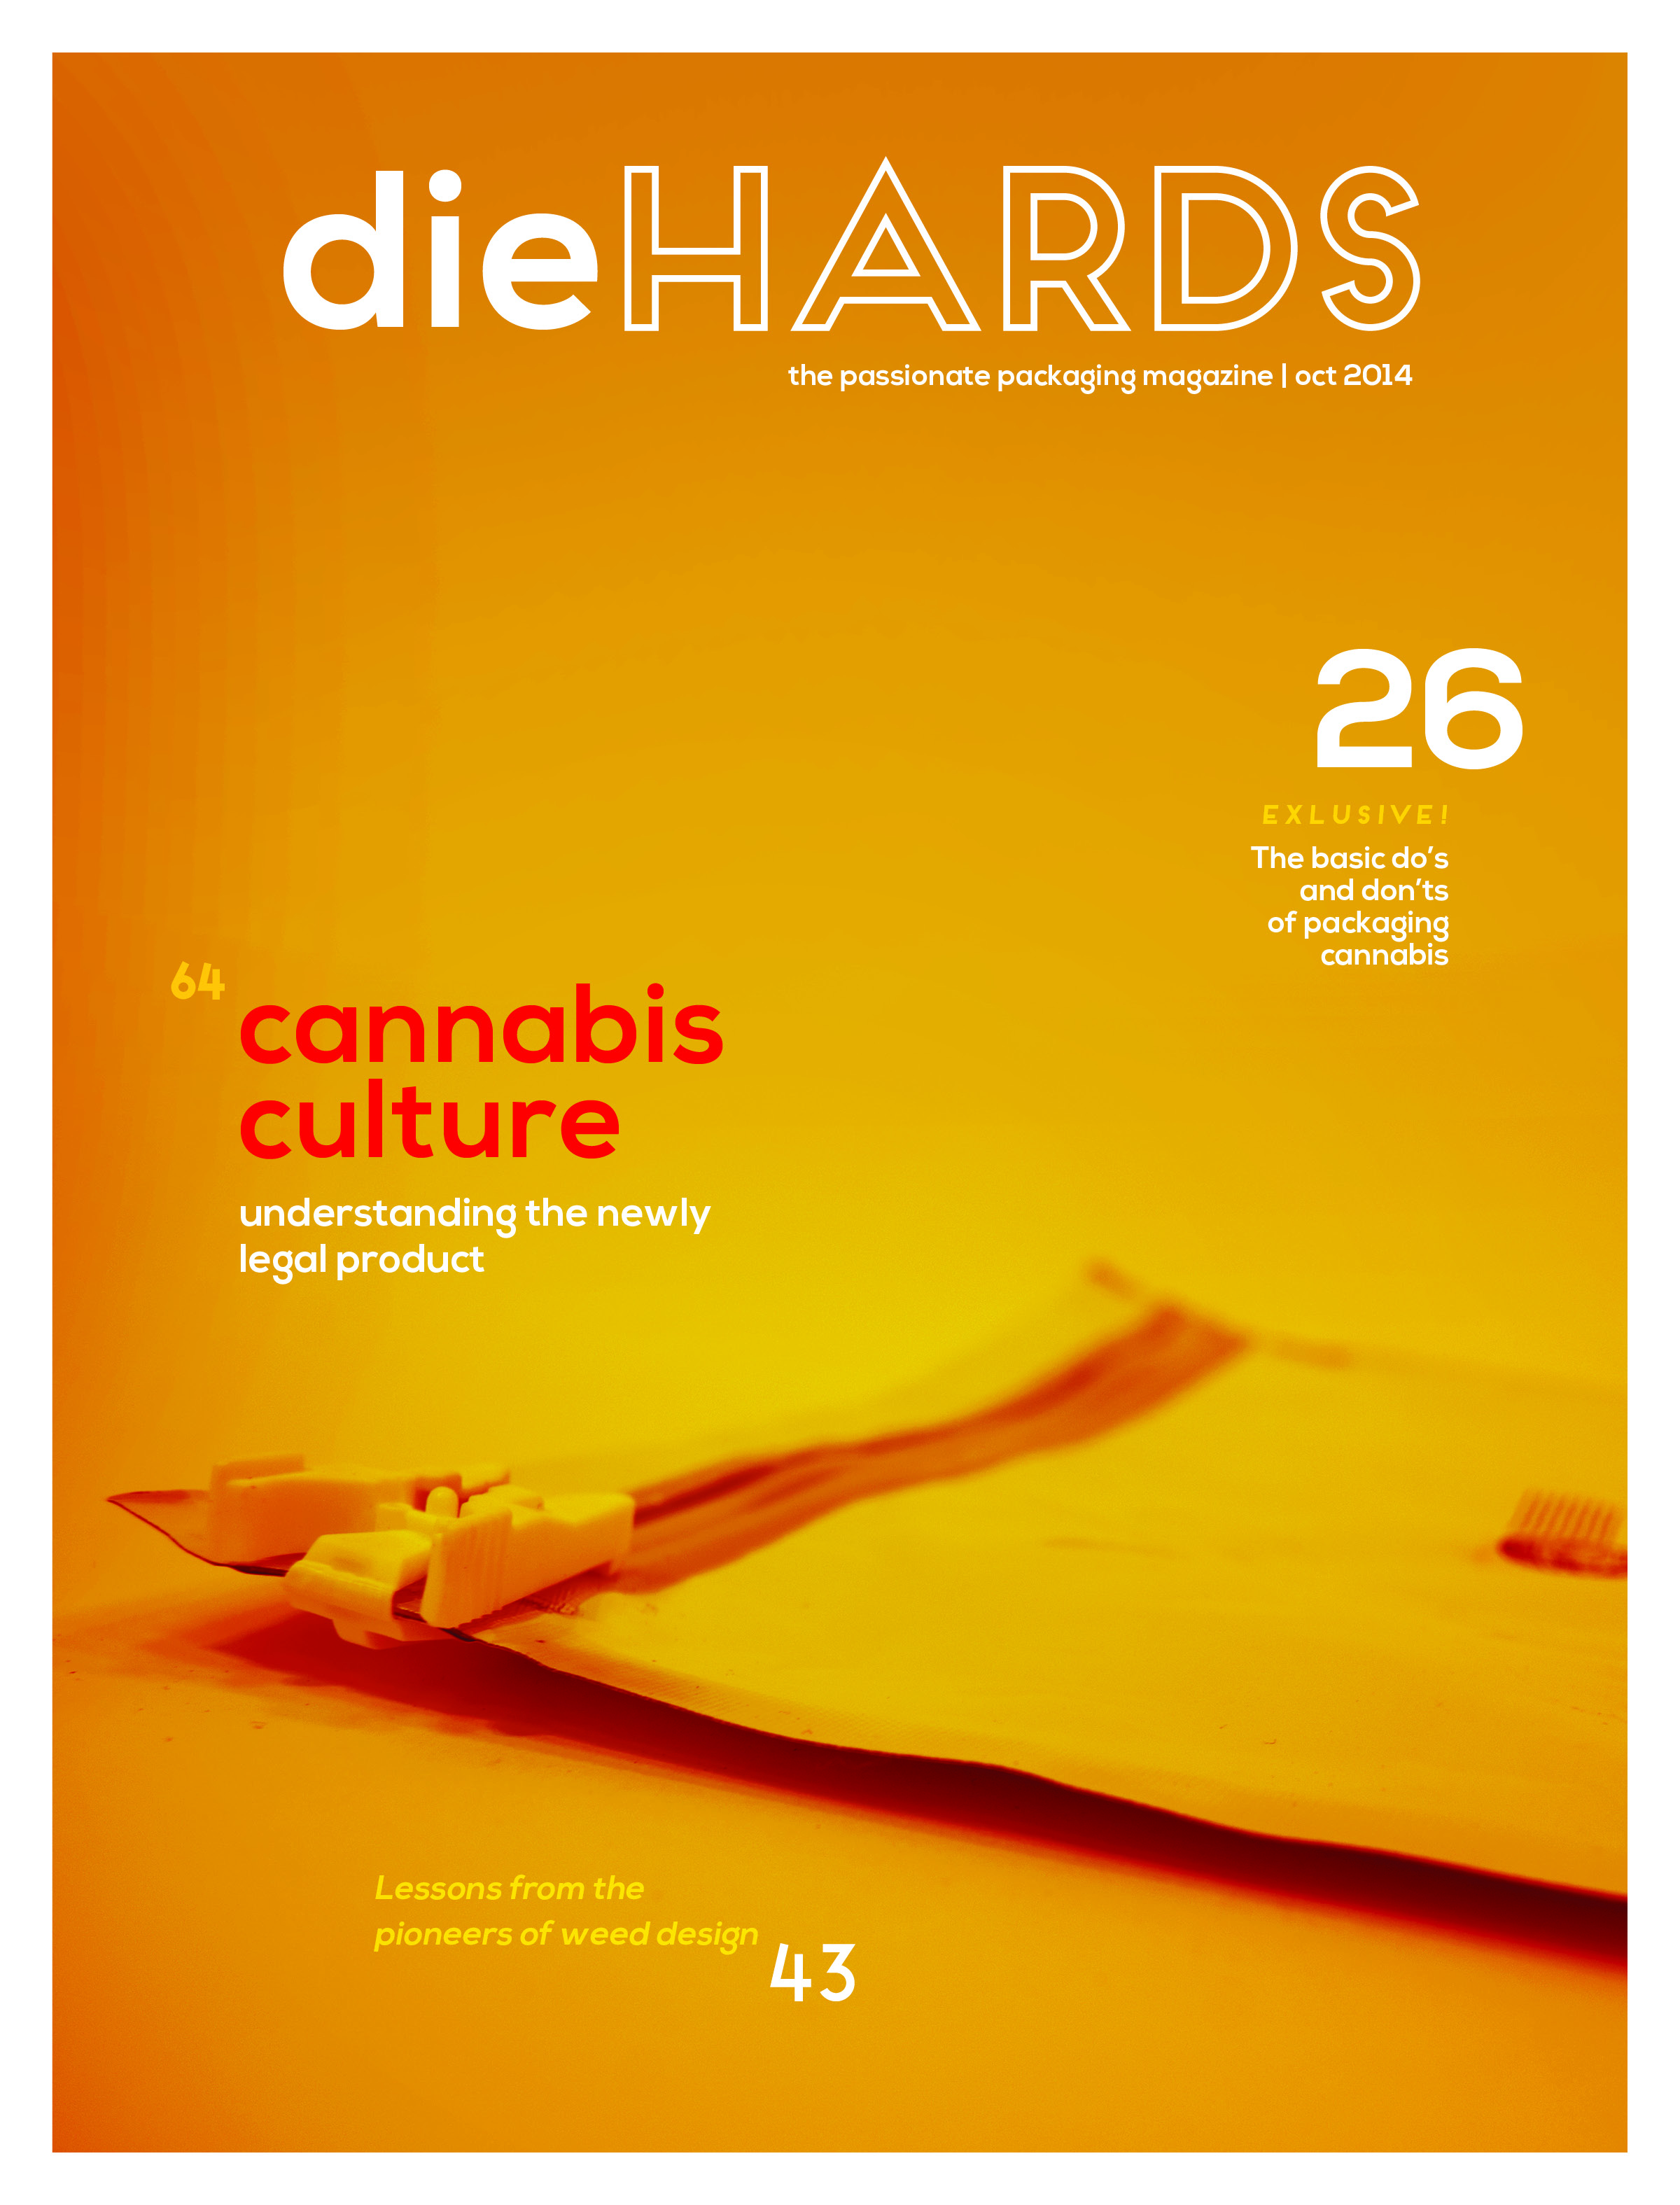 magazine_cannpack_layout_spreads.jpg